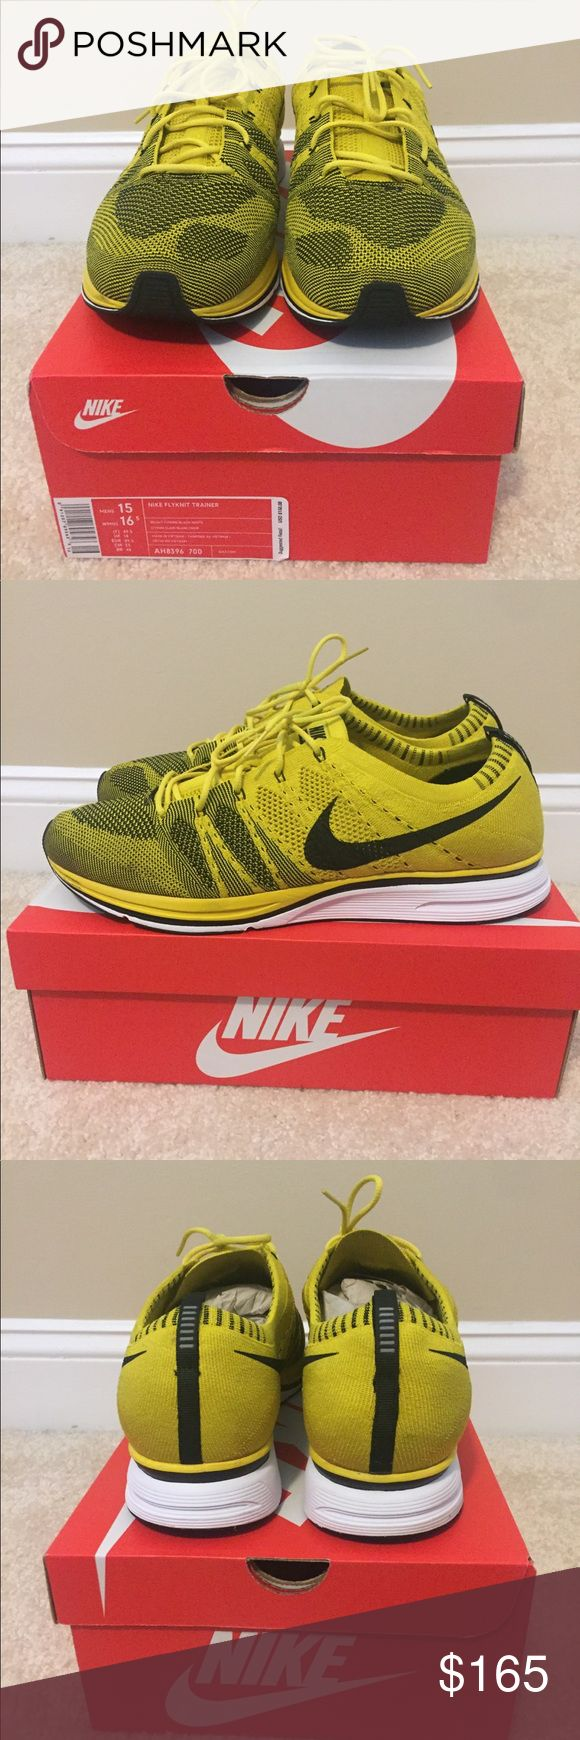 "Nike Flyknit Trainer ""Citron"" Nike Flyknit Trainer Size 15, OG Box  Worn twice, small scuff shown in photos Nike Shoes Sneakers"